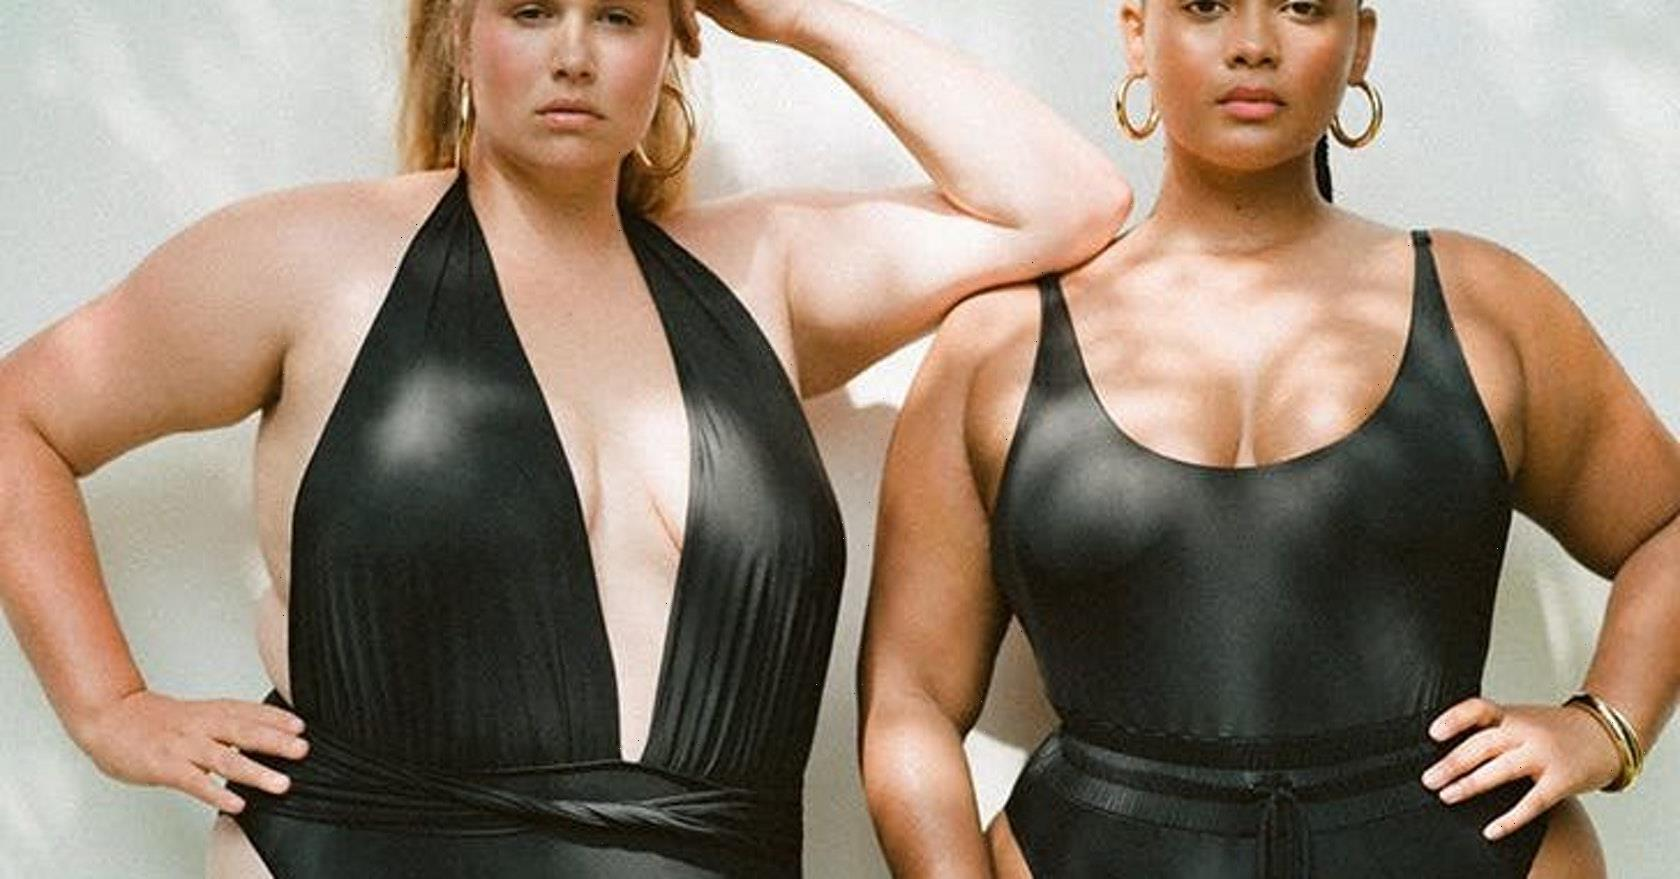 11 black one-piece swimmers that can easily double as a bodysuit